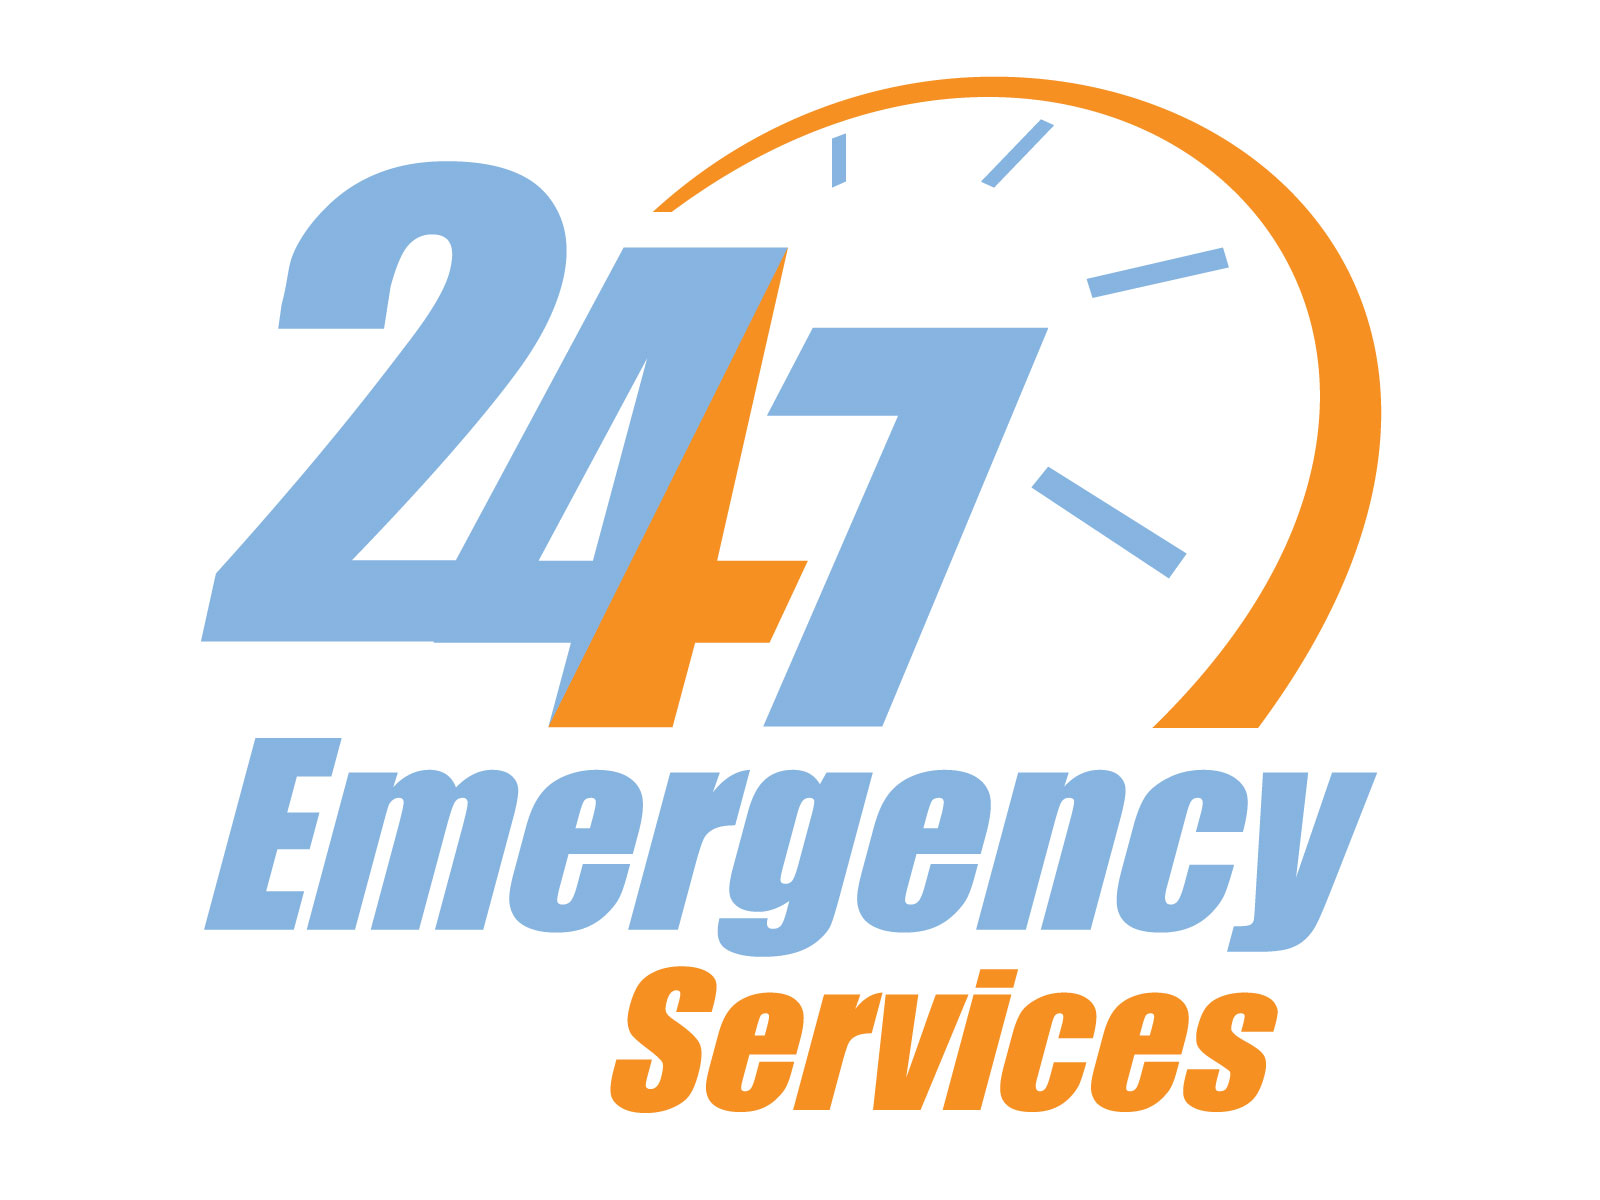 how to call emergency services in australia